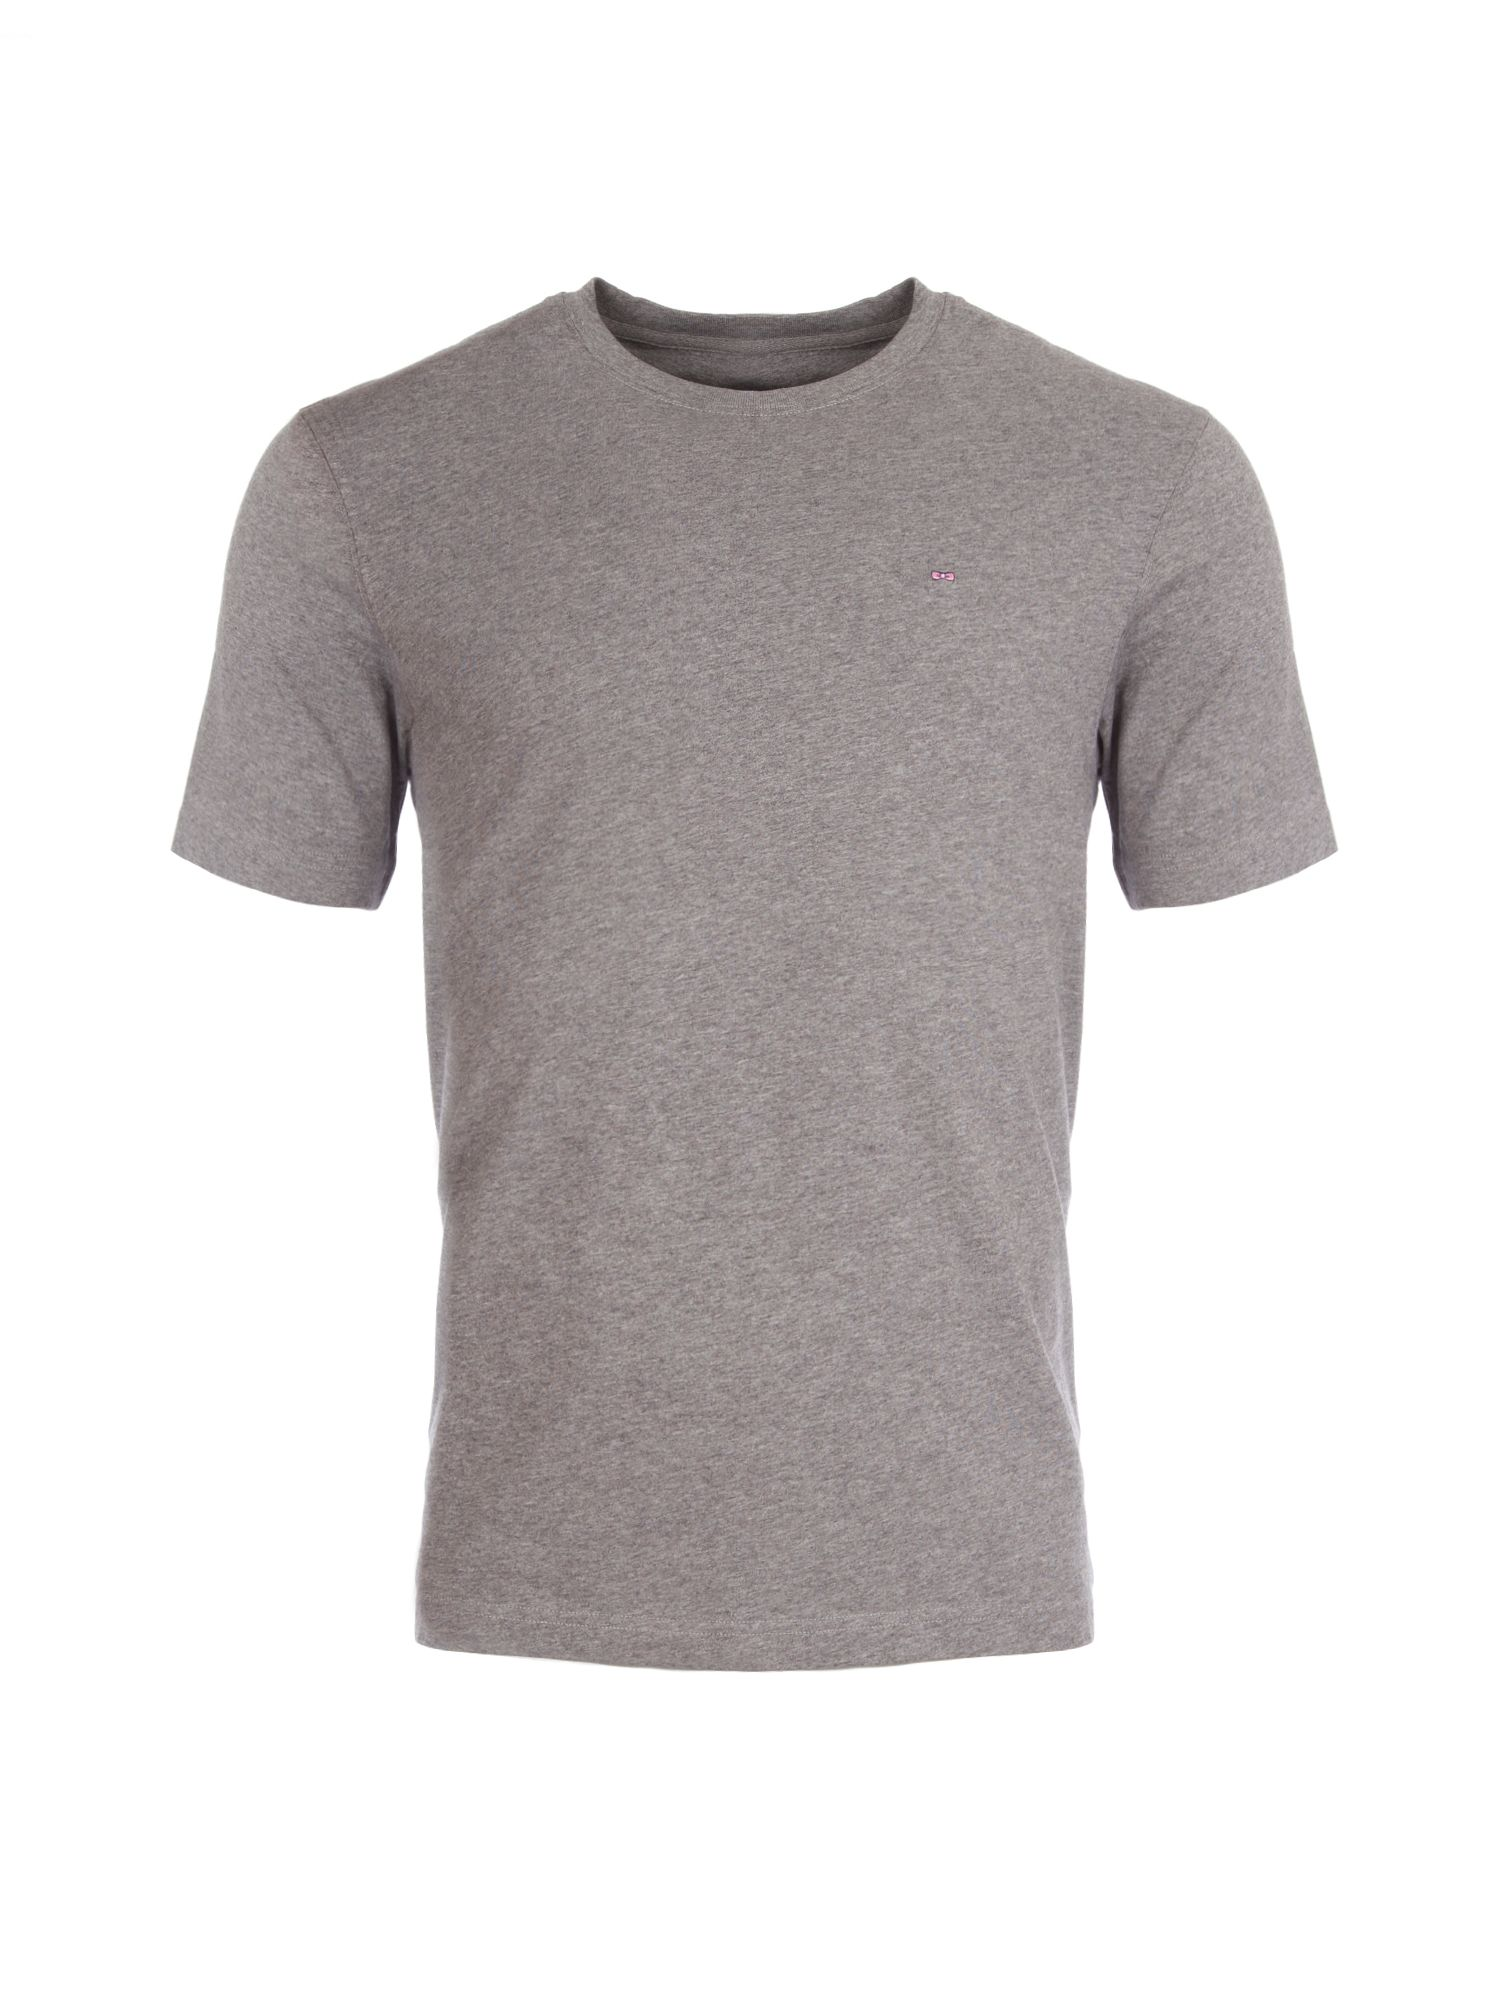 Men's Eden Park Classic Cotton T-Shirt, Charcoal